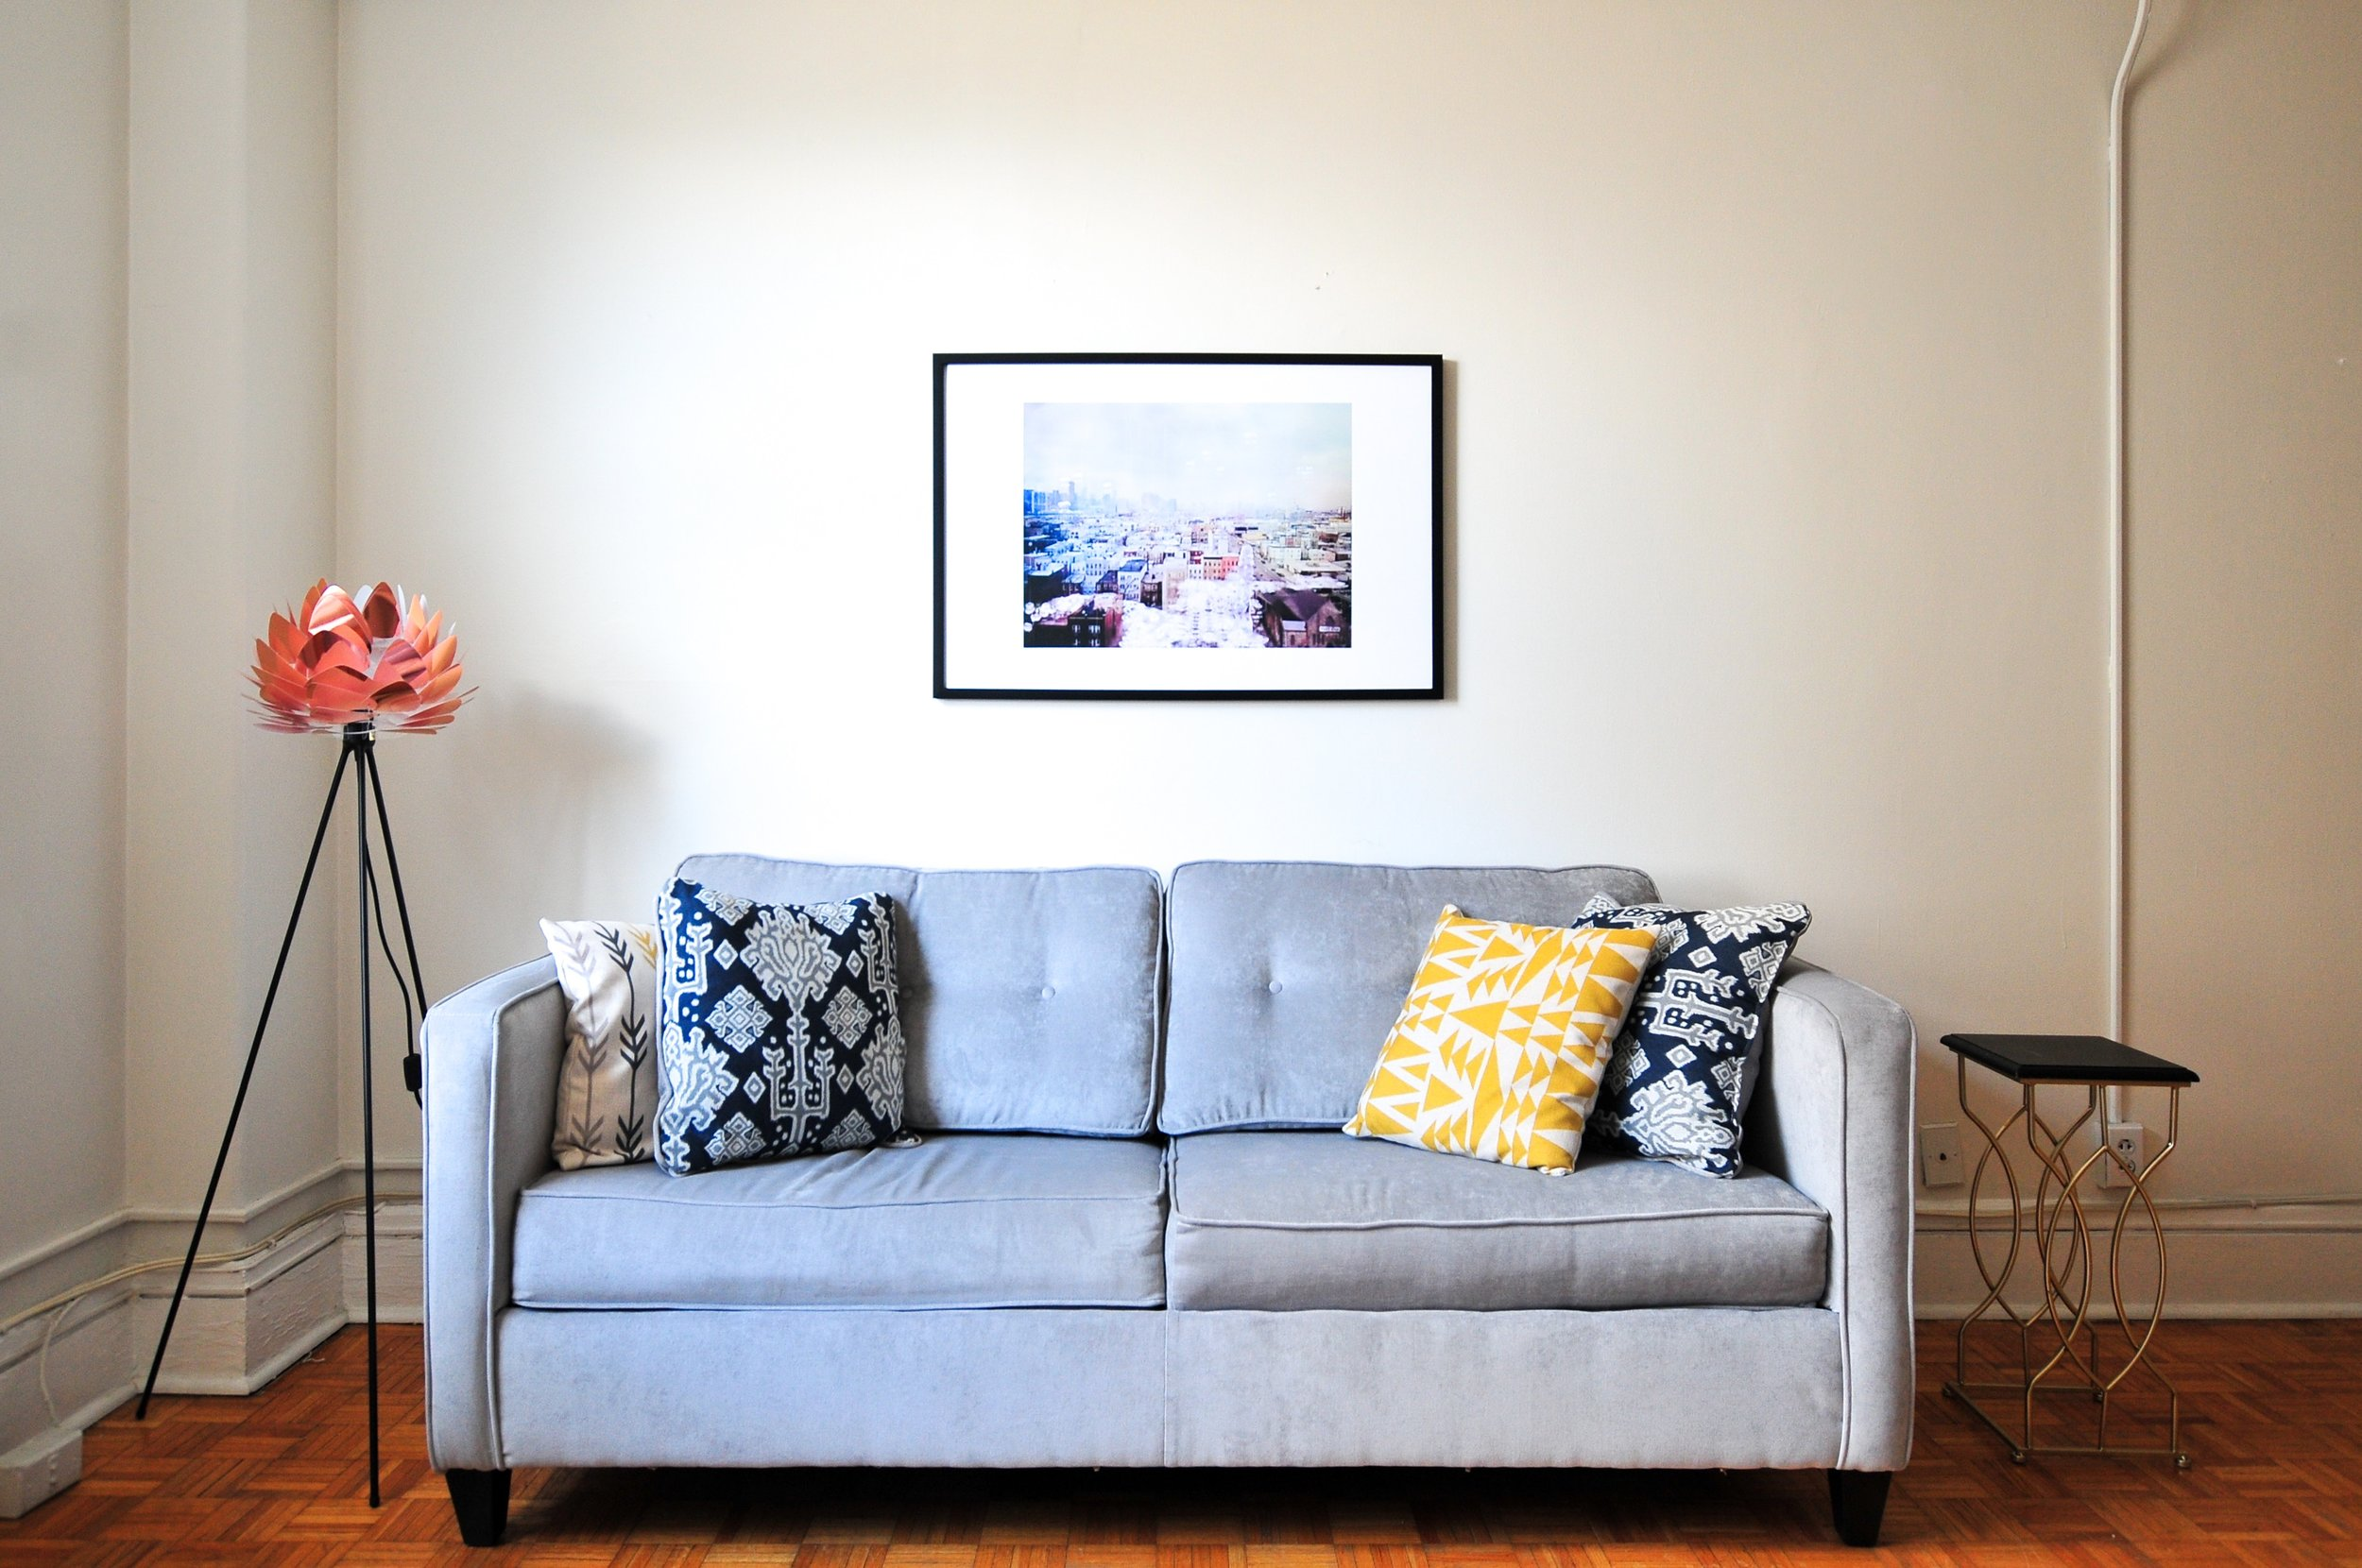 therapycouch.jpg